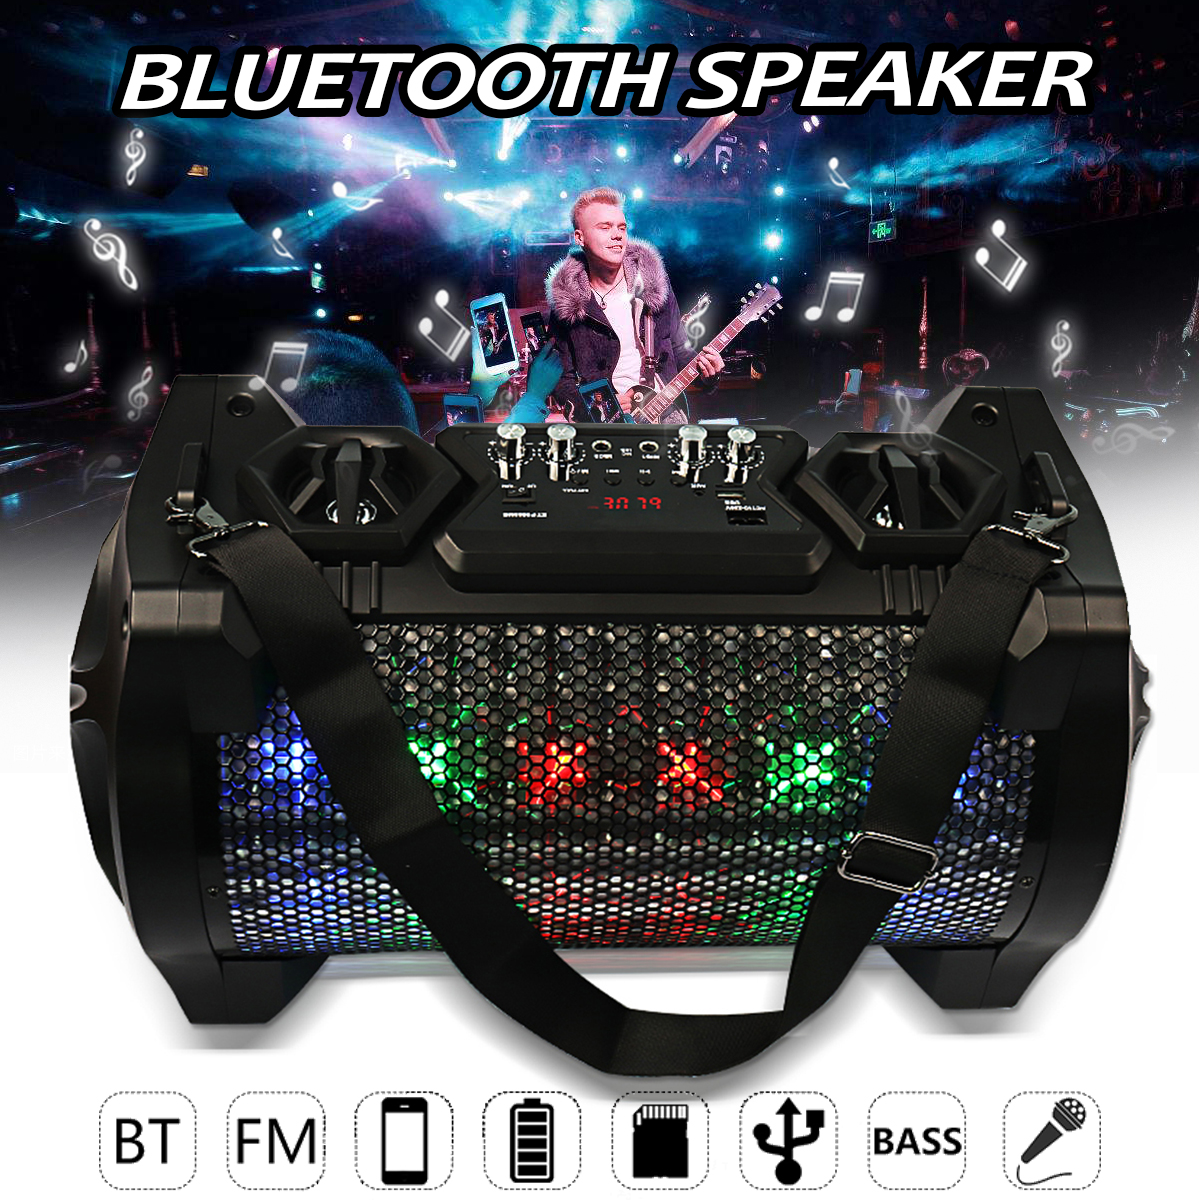 Portable Wireless Bluetooth Speaker Bass Stereo FM Radio AUX/USB/TF Card Loudspeaker Subwoofer Handfree For Outdoor Music Player 25w wireless bluetooth speaker stereo bass portable loudspeaker sound system aux usb tf card fm radio outdoor speaker subwoofer